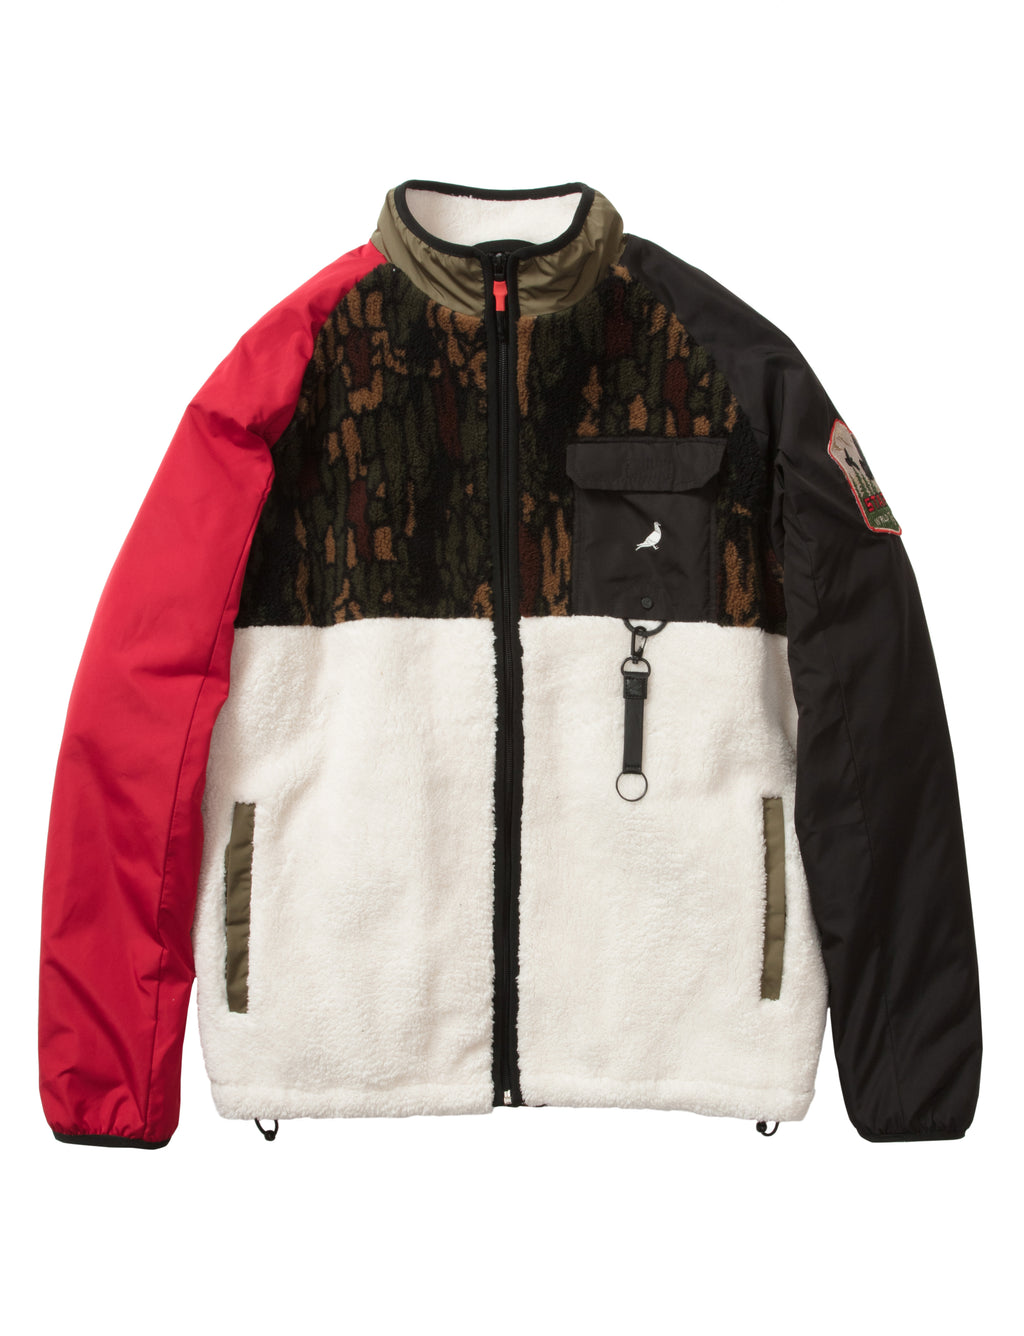 Outdoor Camo Shear Jacket - Jacket | Staple Pigeon